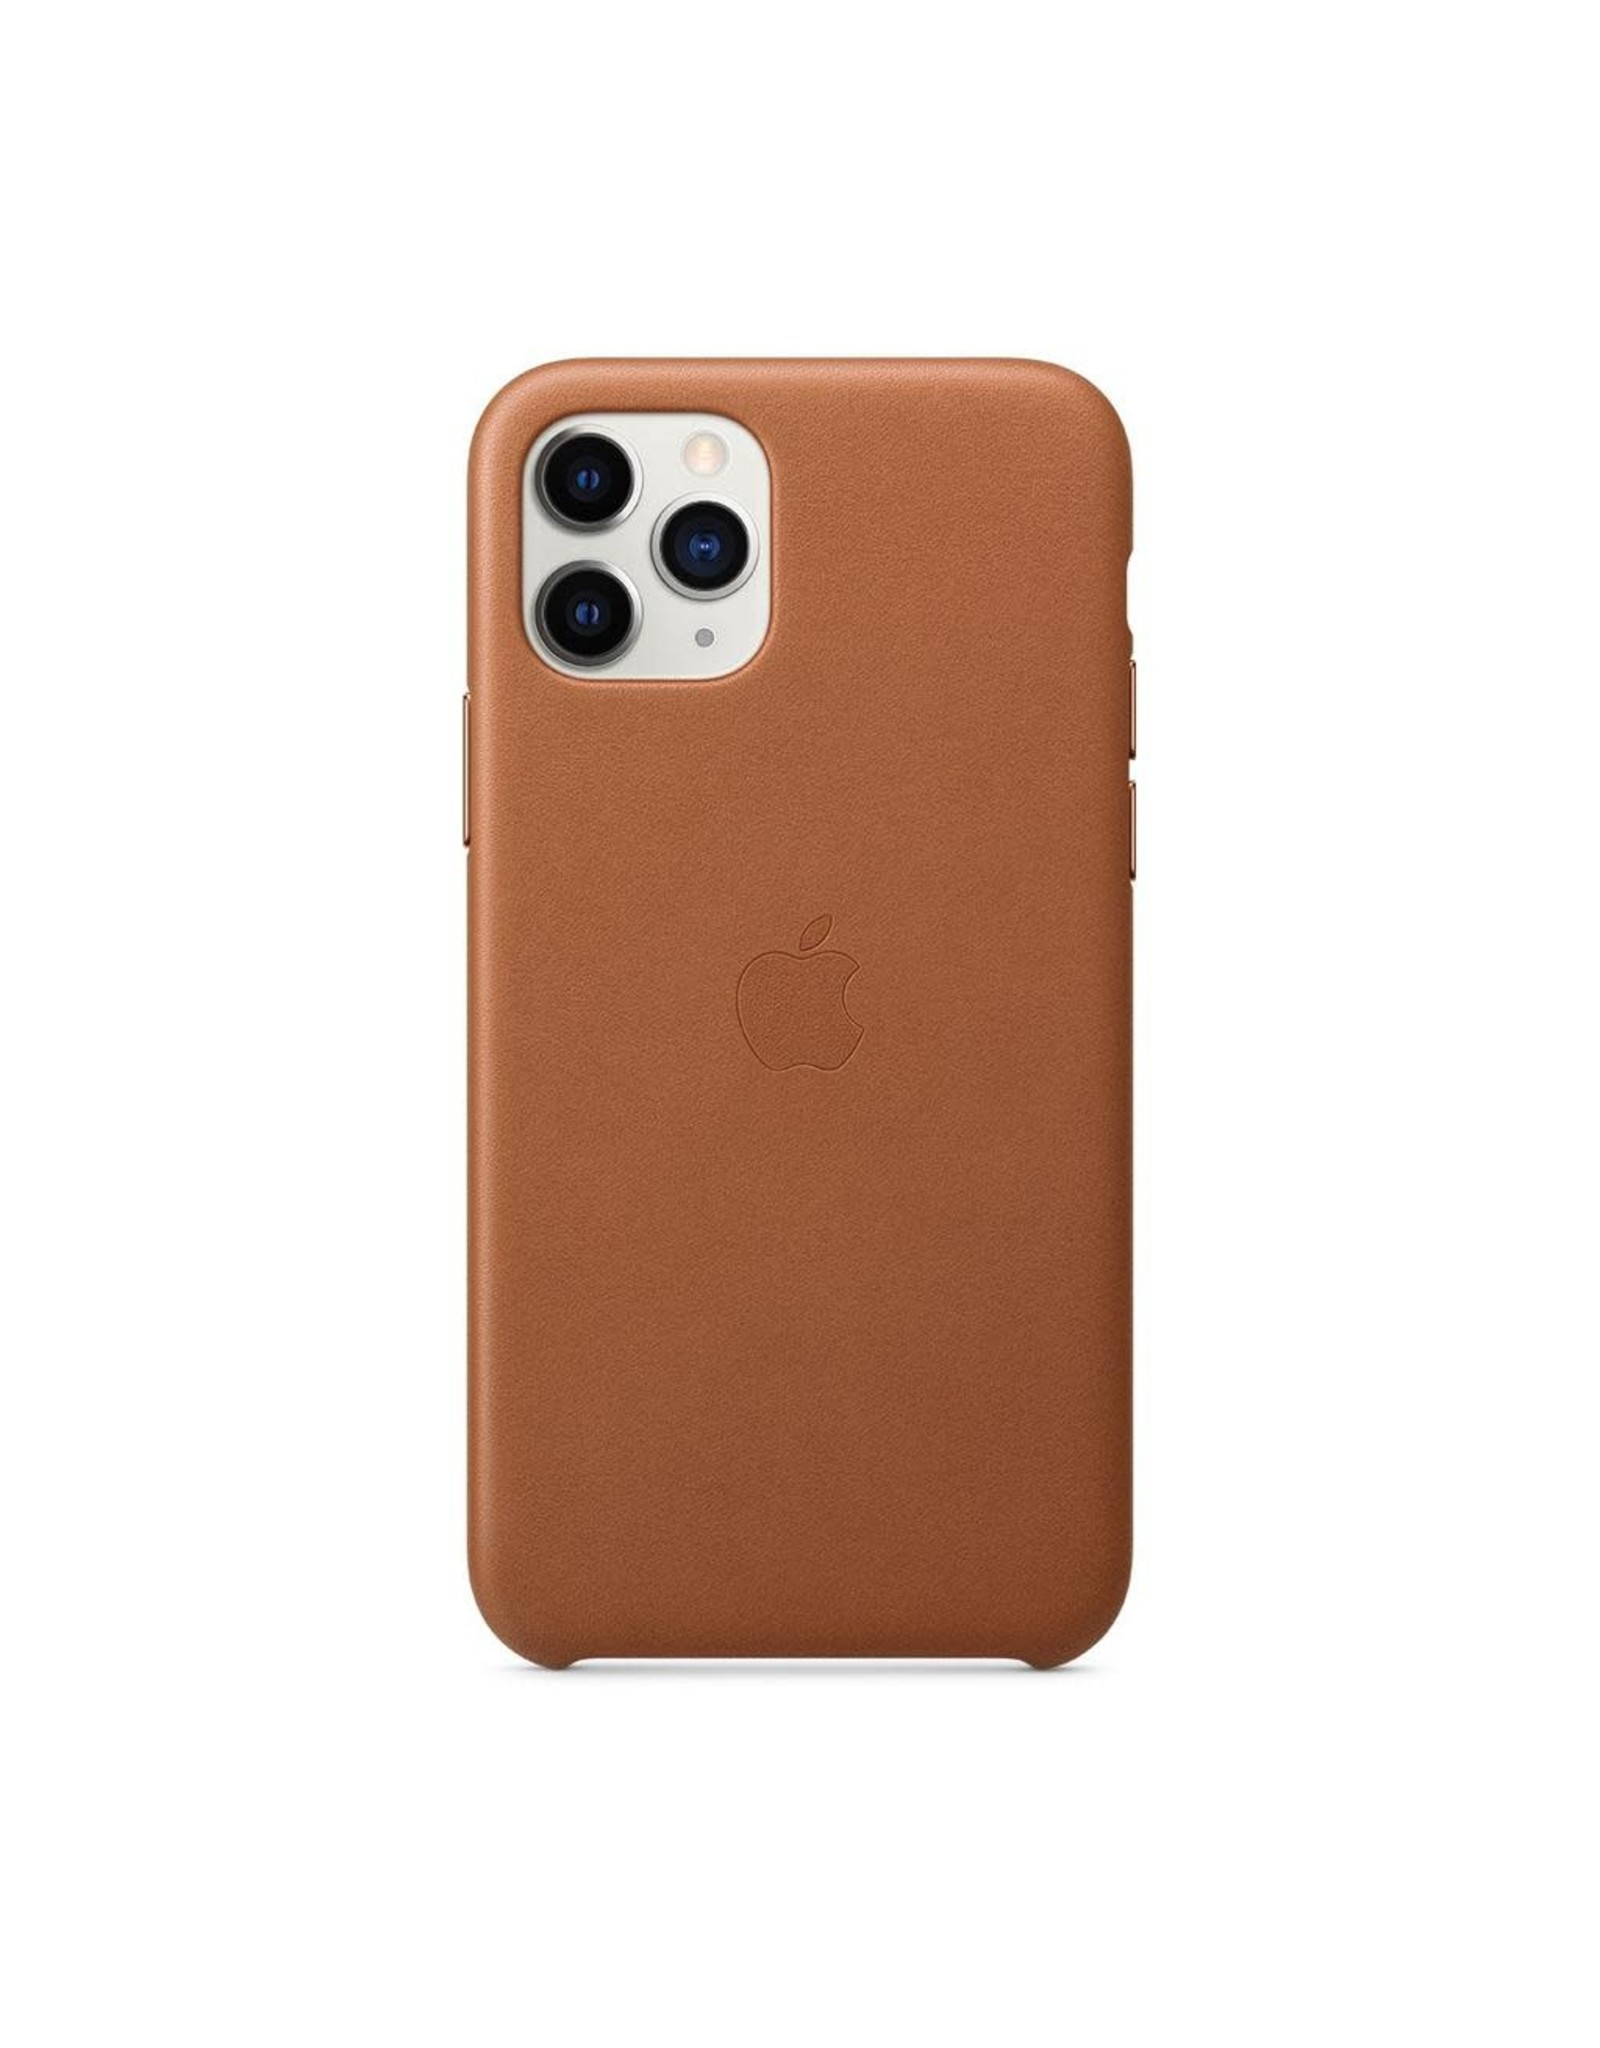 Apple Apple iPhone 11 Pro Leather Case - SADDLE BROWN